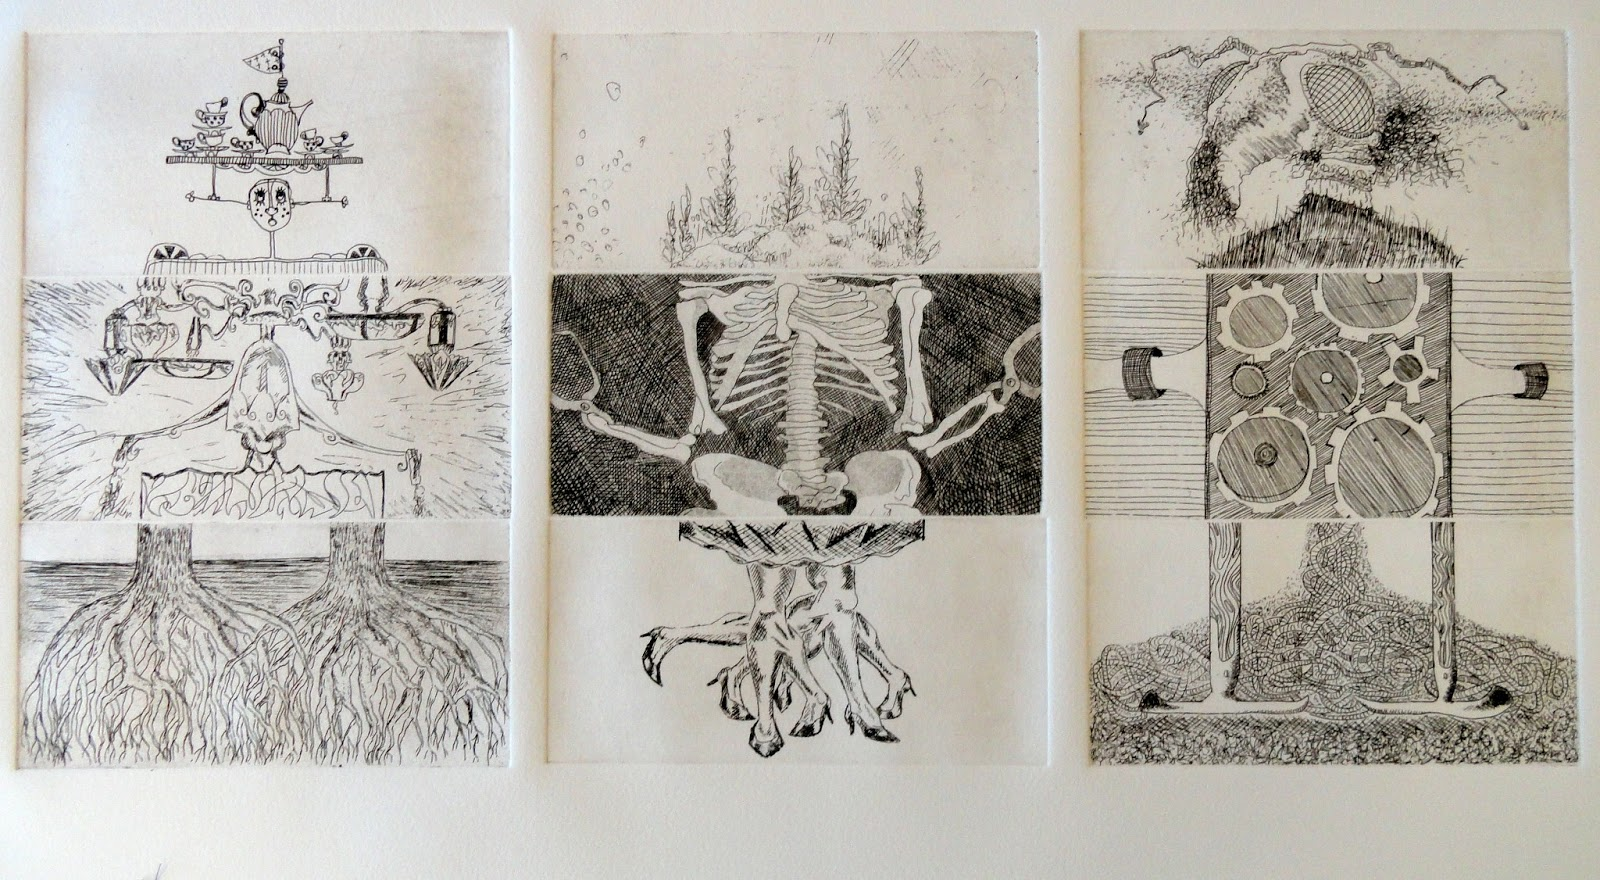 Exquisite Corpse: The Office of Surrealist Investigations